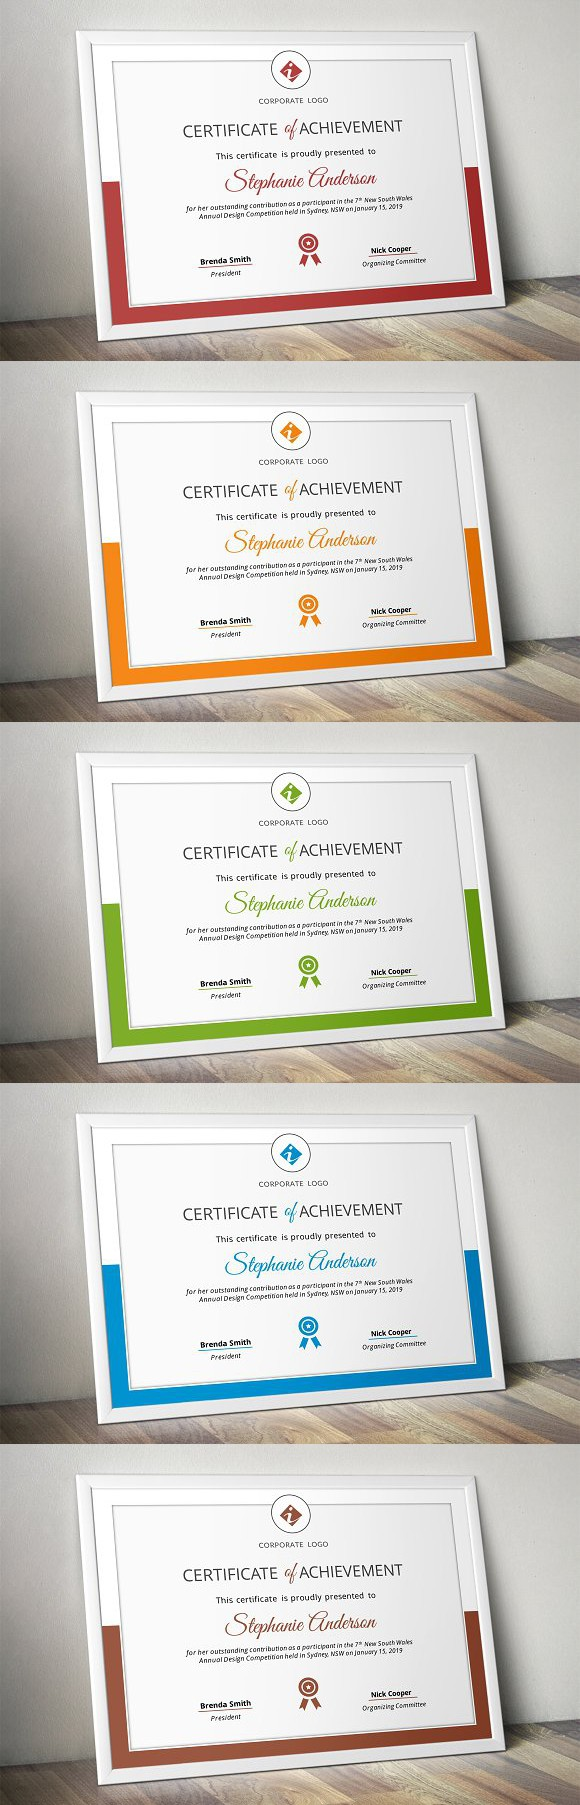 Corporate powerpoint certificate | Pinterest